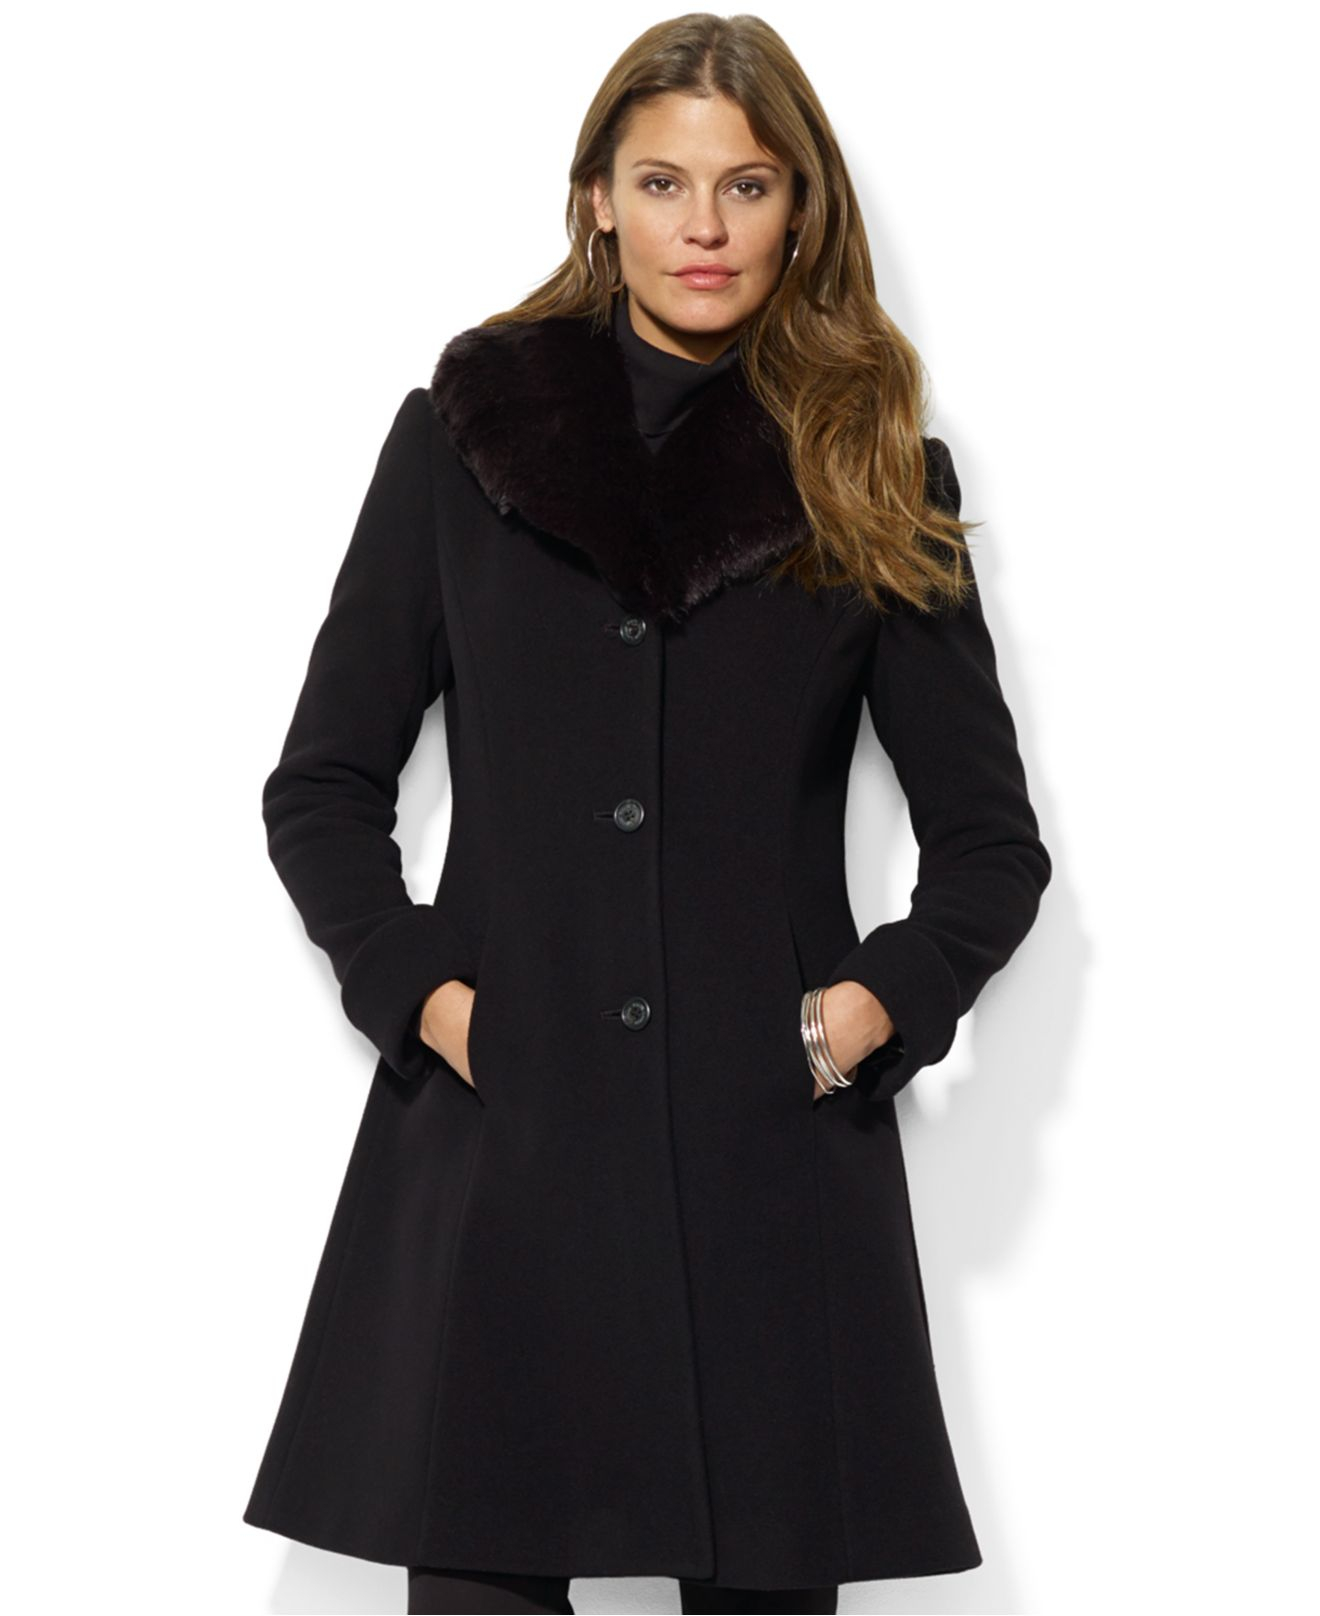 Lauren by ralph lauren Faux-Fur-Collar A-Line Coat in Black | Lyst